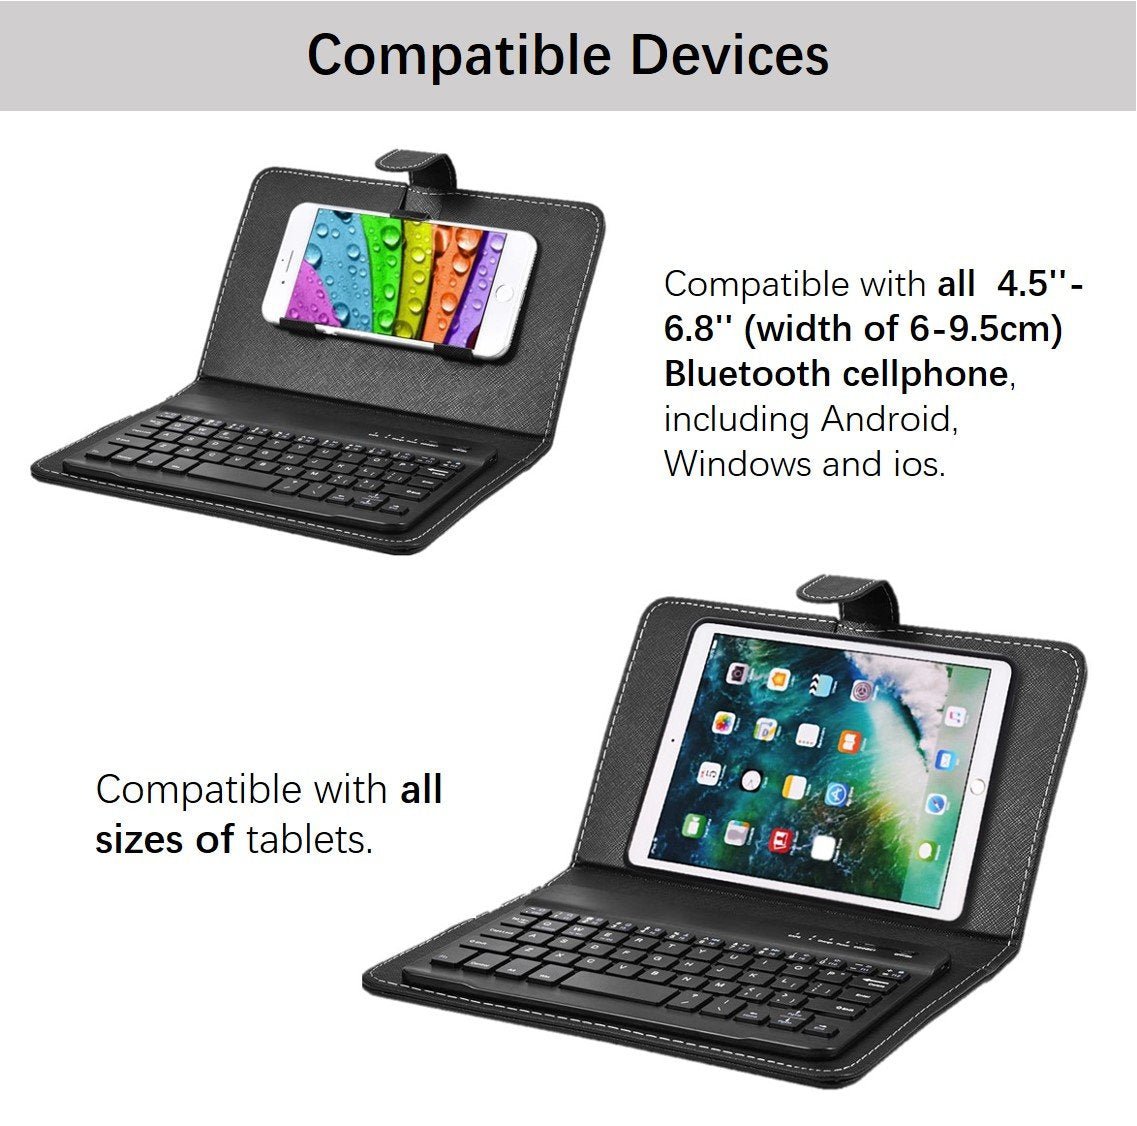 Wireless Bluetooth Keyboard With Protective Cover